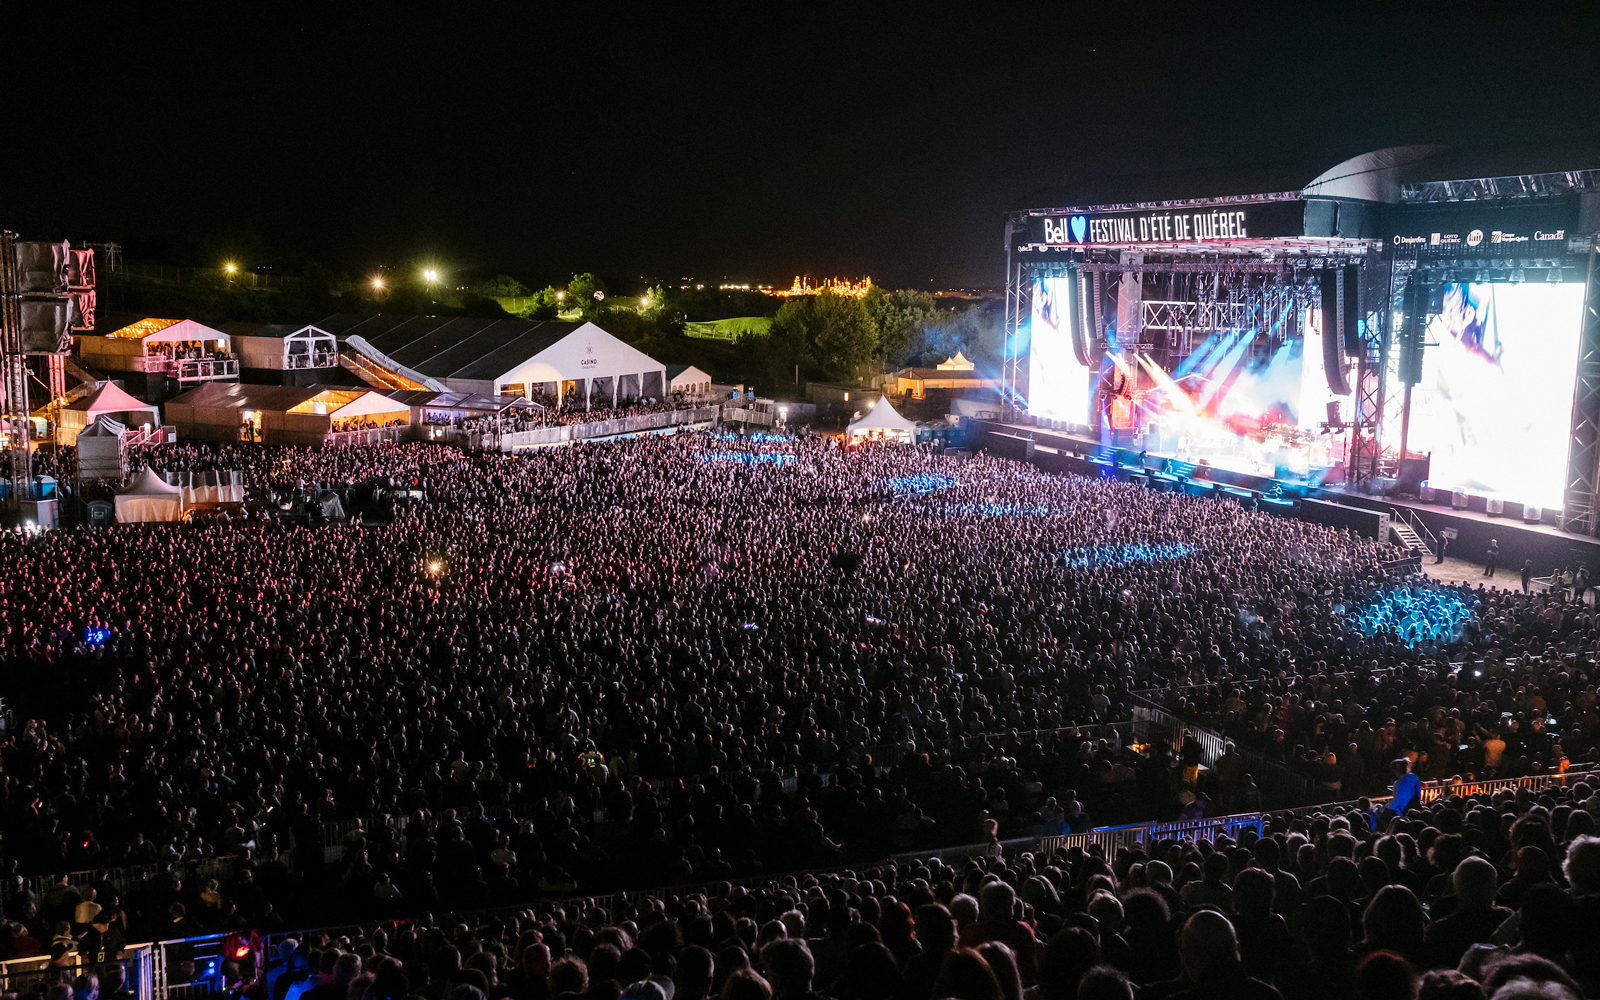 Quebec Summer Music Festival